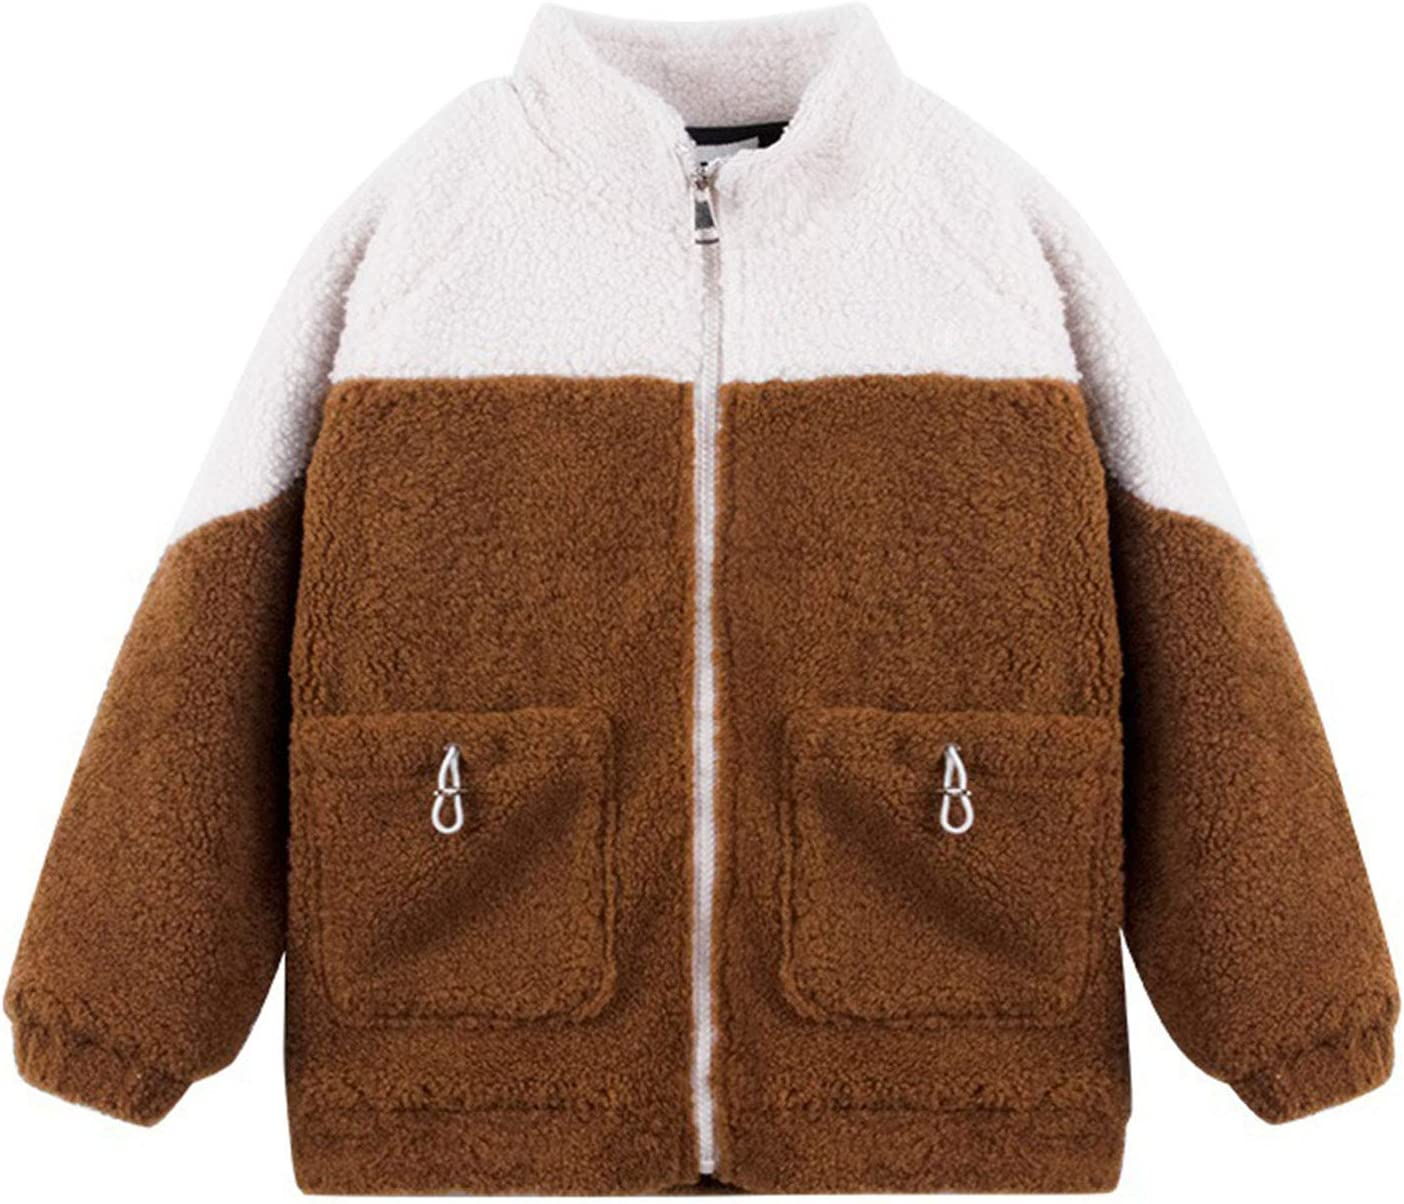 DUTUI Children's Clothing Jacket Autumn and Winter Models Boys Thick Fleece Jacket, Boys and Girls Warm Casual Vest Non Hooded Jacket,Brown,3XL